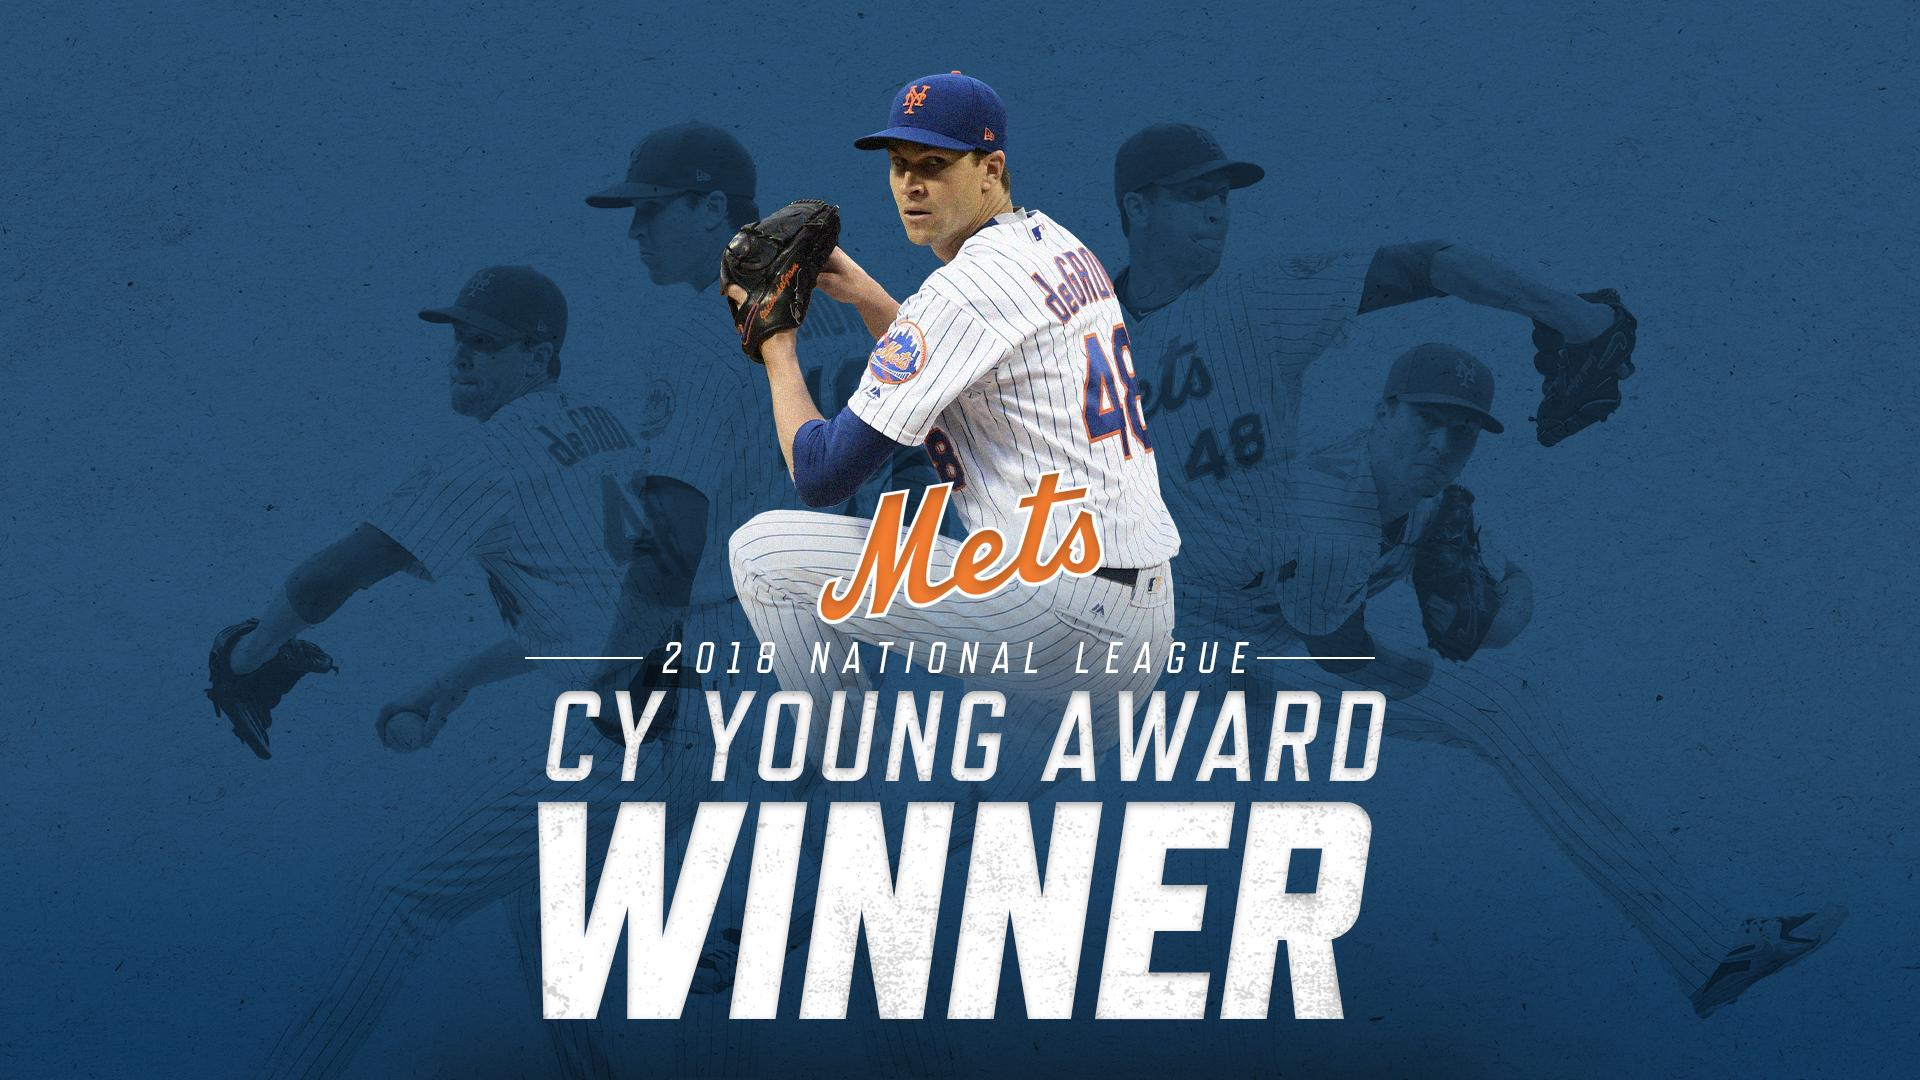 OFFICIAL: @JdeGrom19 is the 2018 #NLCyYoung! #Mets https://t.co/VbK0JUhnrx